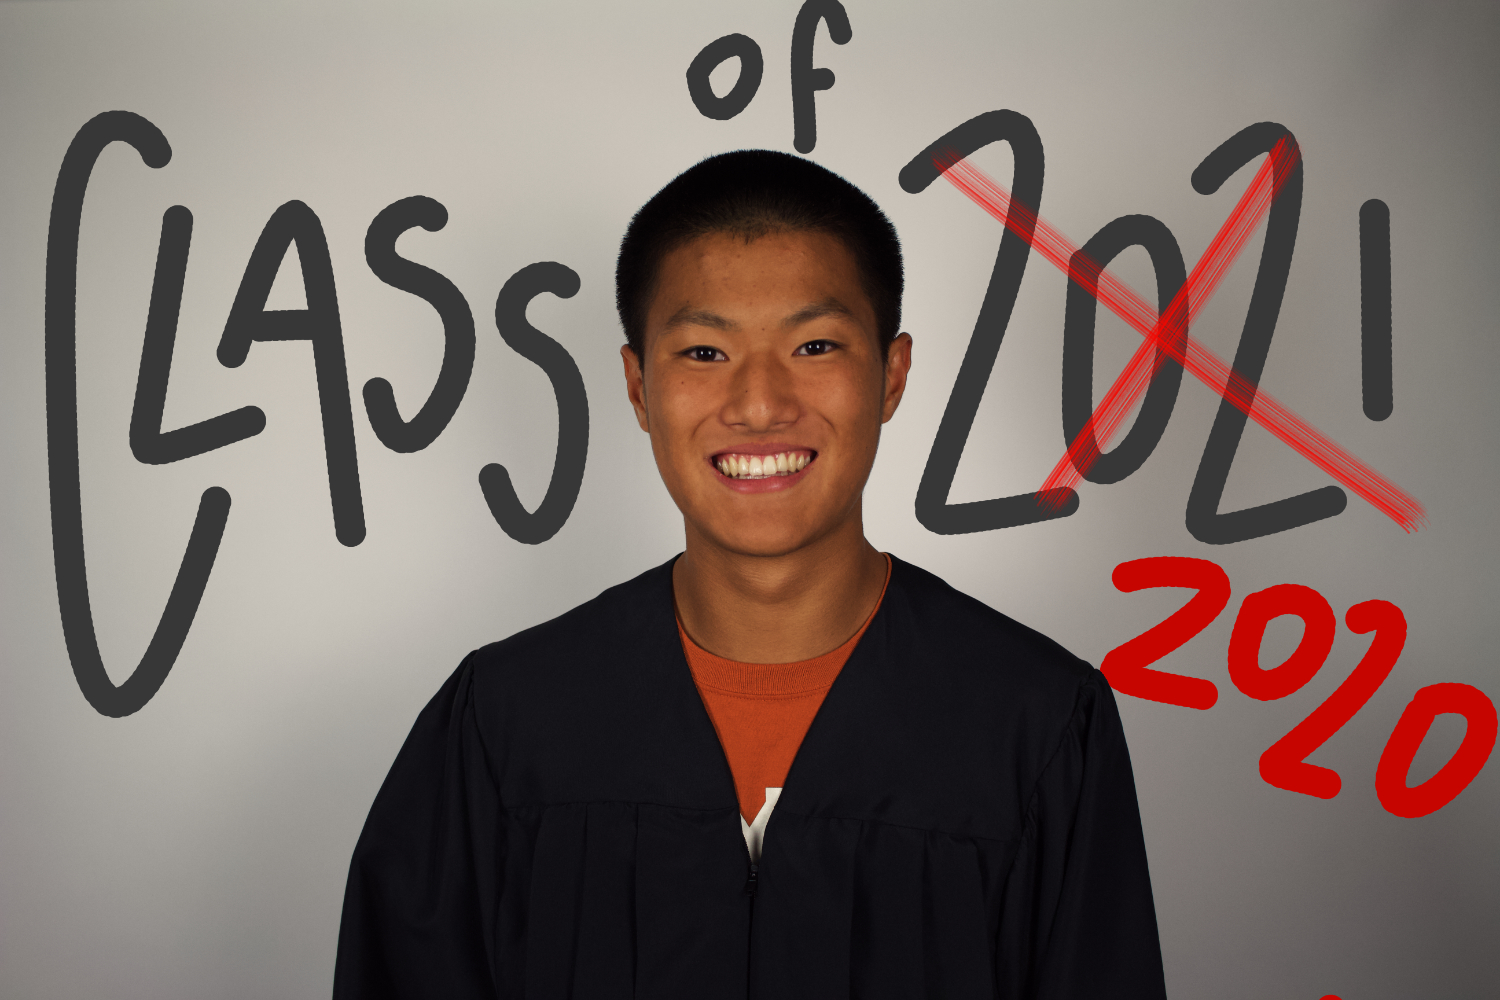 After making the decision to graduate early, William took over as the class of 2020's valedictorian.